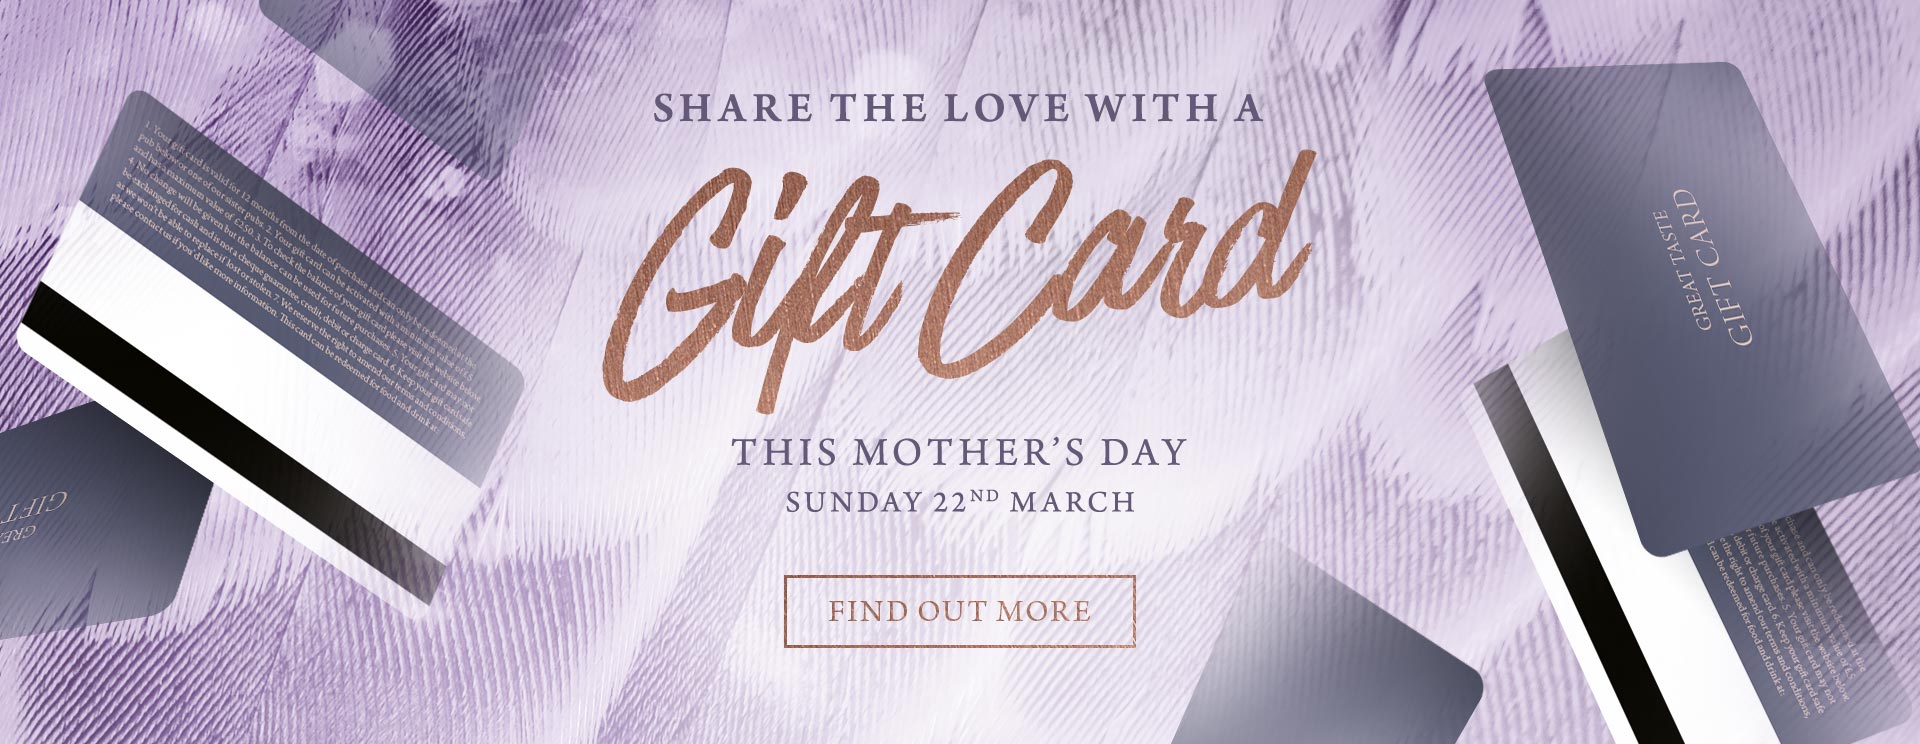 pcp-2020-mothersday-giftcard-banner.jpg